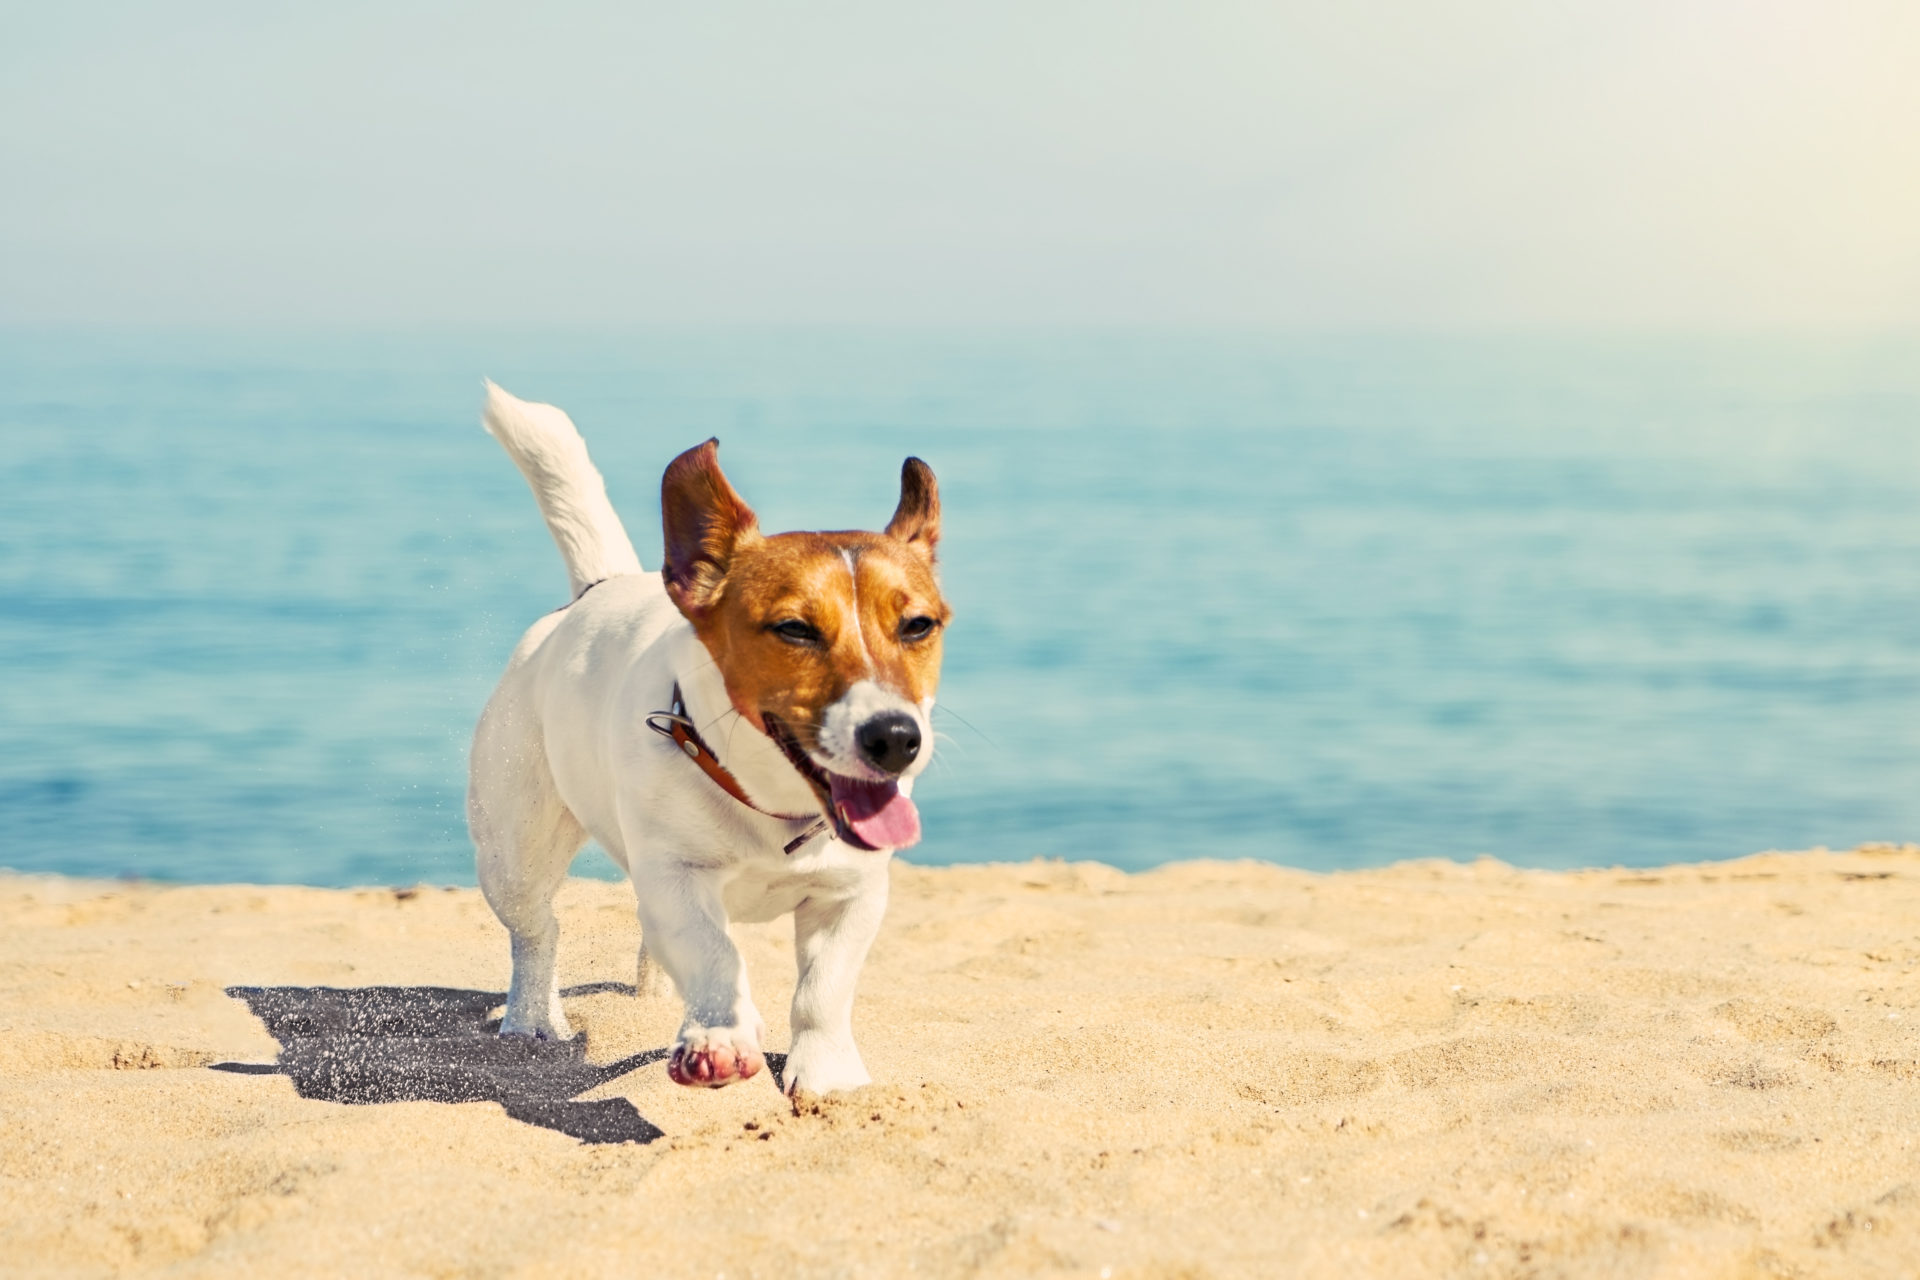 Jack Russel dog at the beach